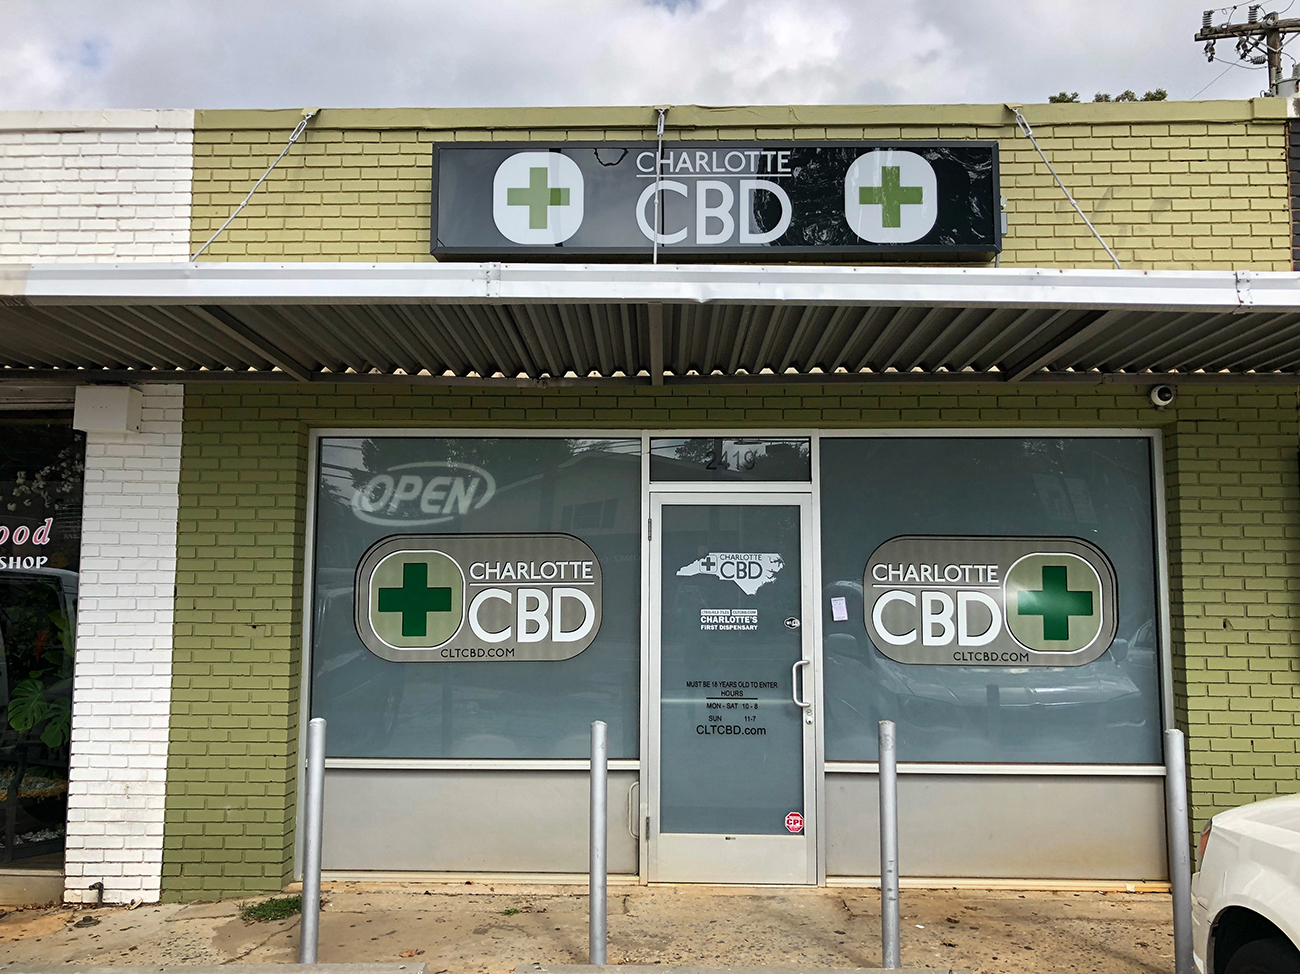 Where to buy CBD oil in Charlotte